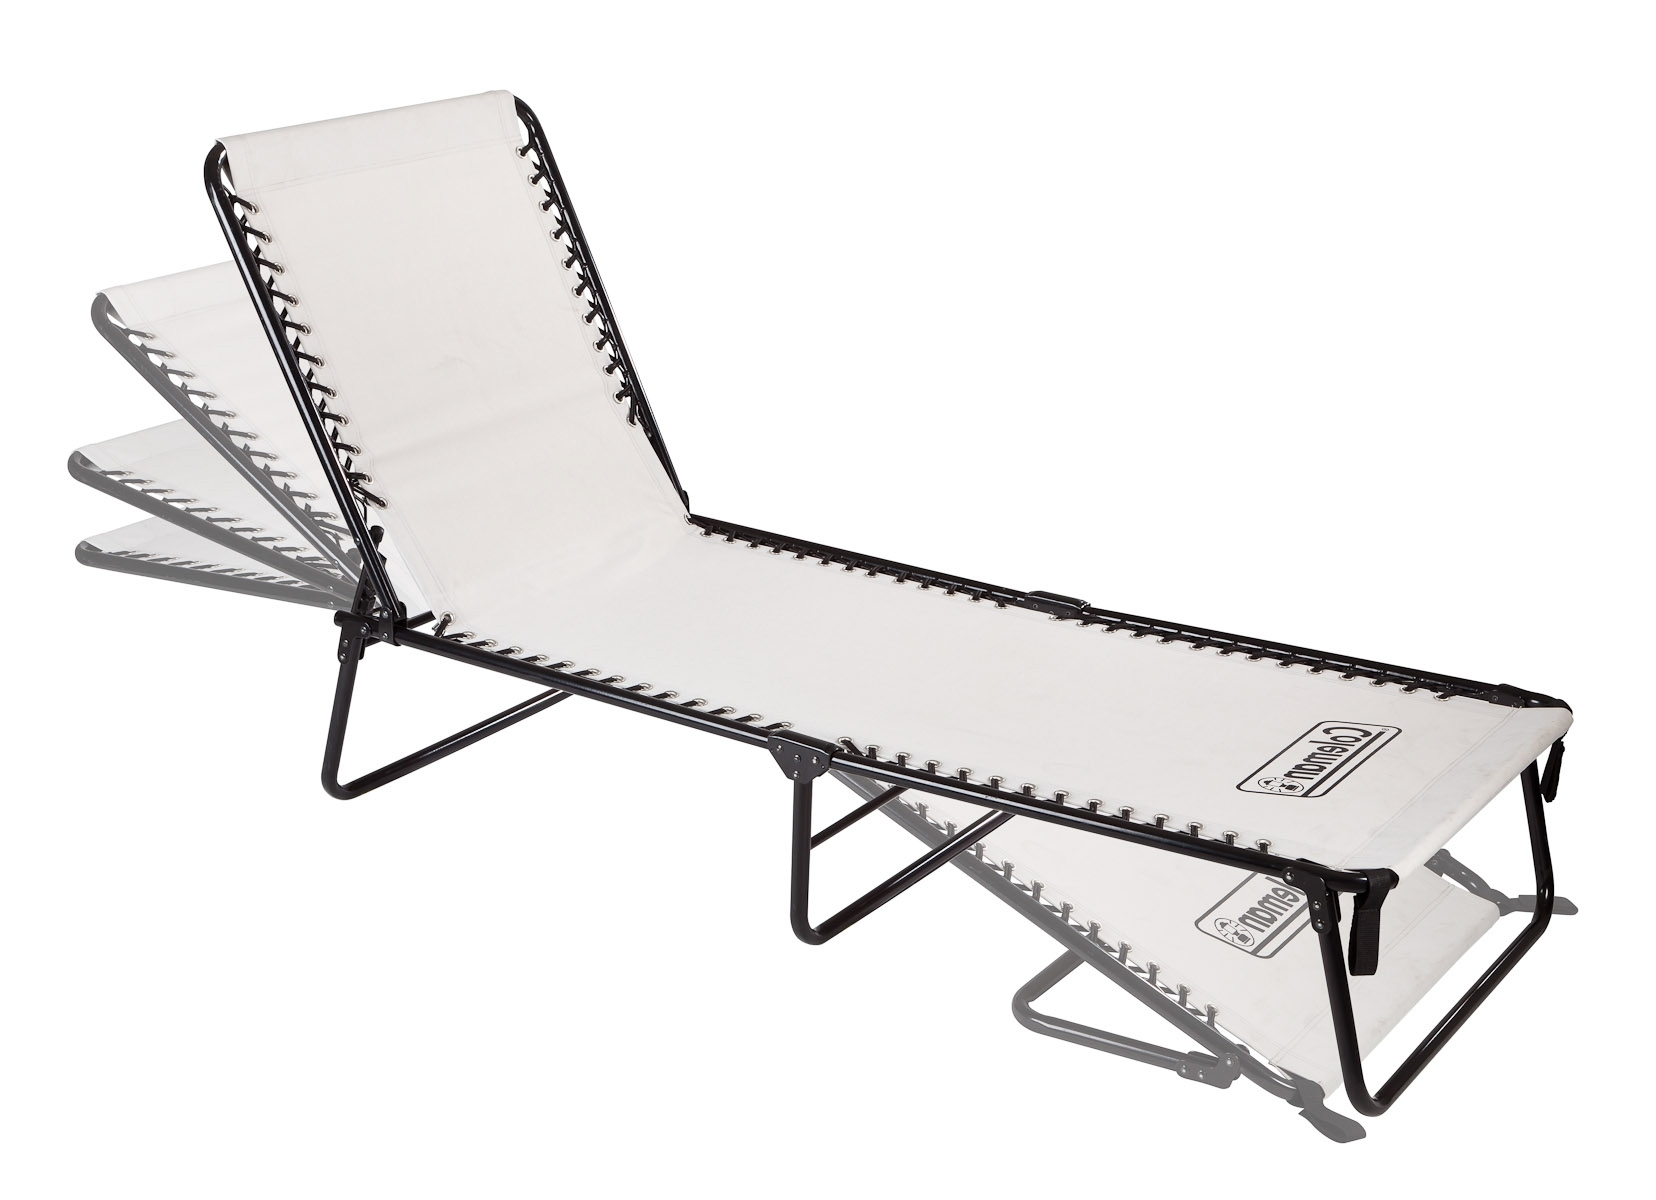 Most Popular Outdoor Folding Chaise Lounges Regarding Fold Up Chaise Lounge Chairs • Lounge Chairs Ideas (View 2 of 15)